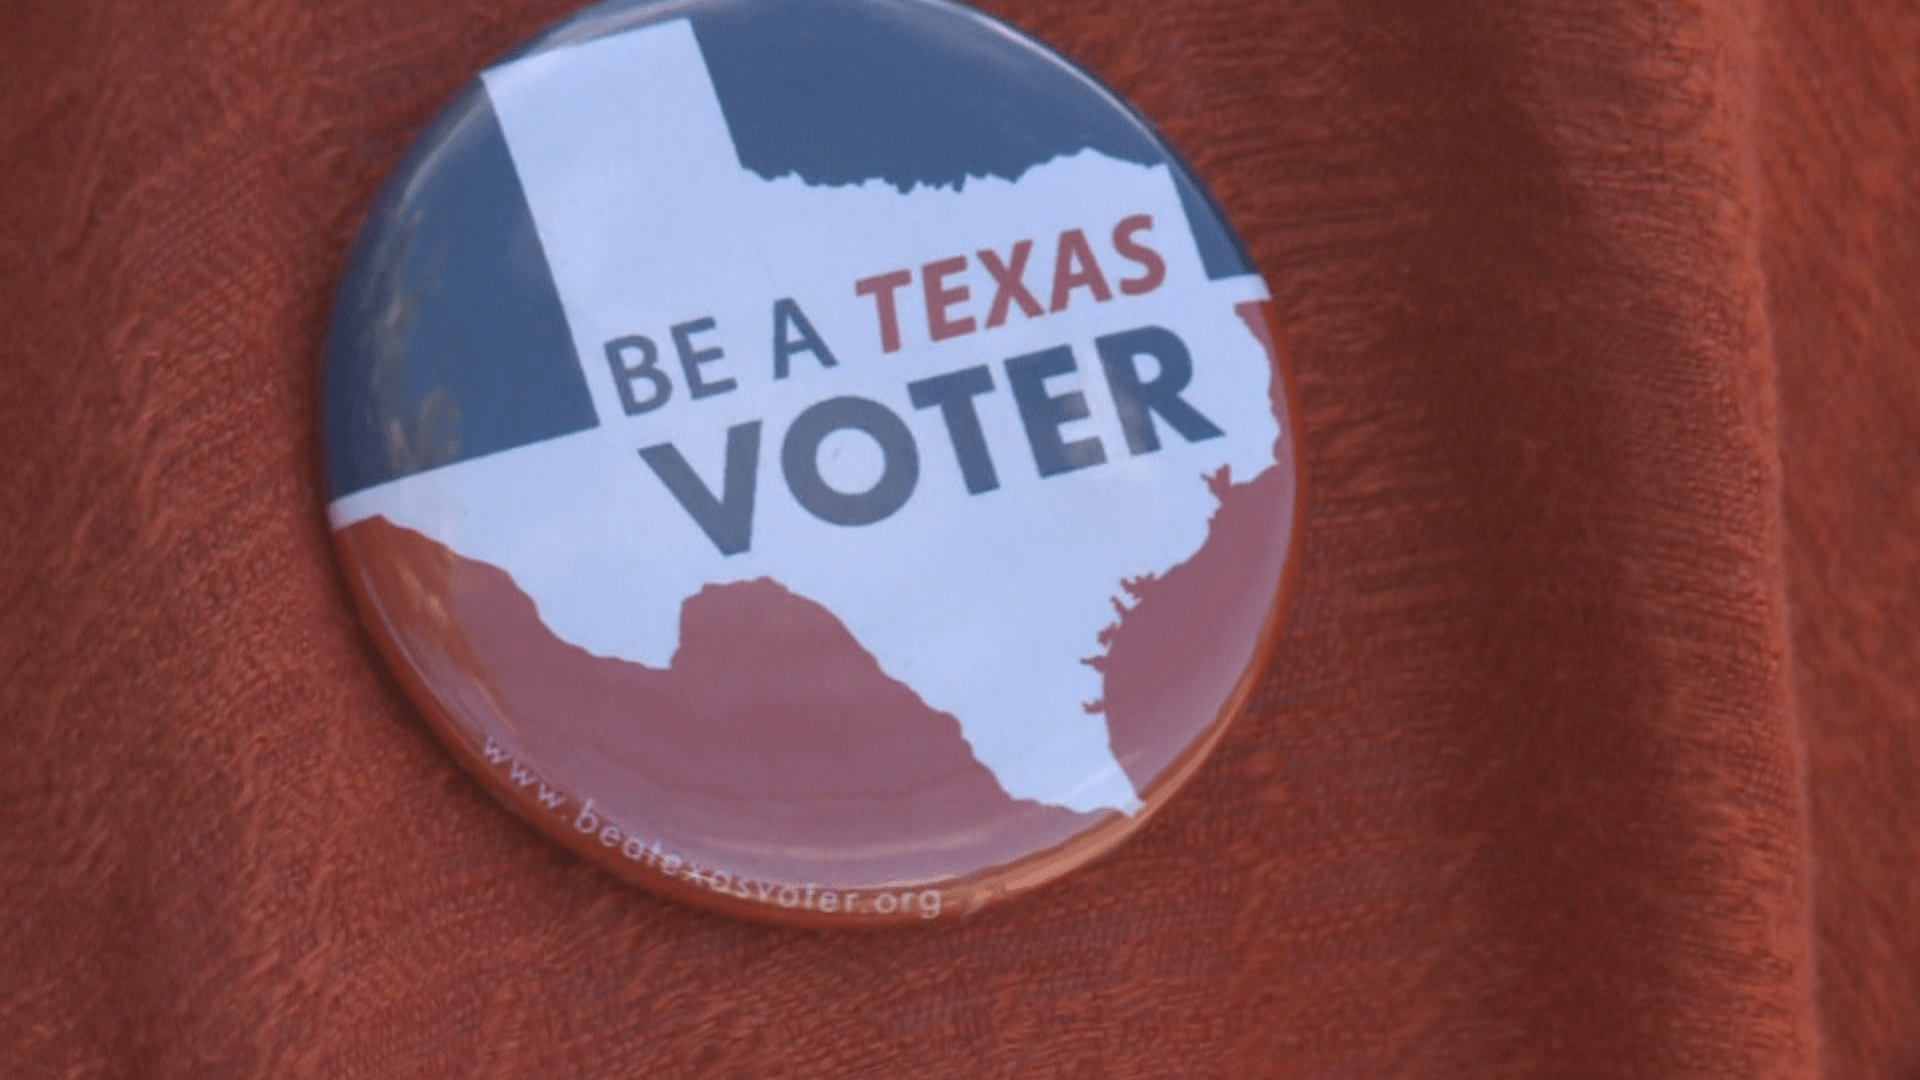 Texas Voter button_1538784091175.png.jpg